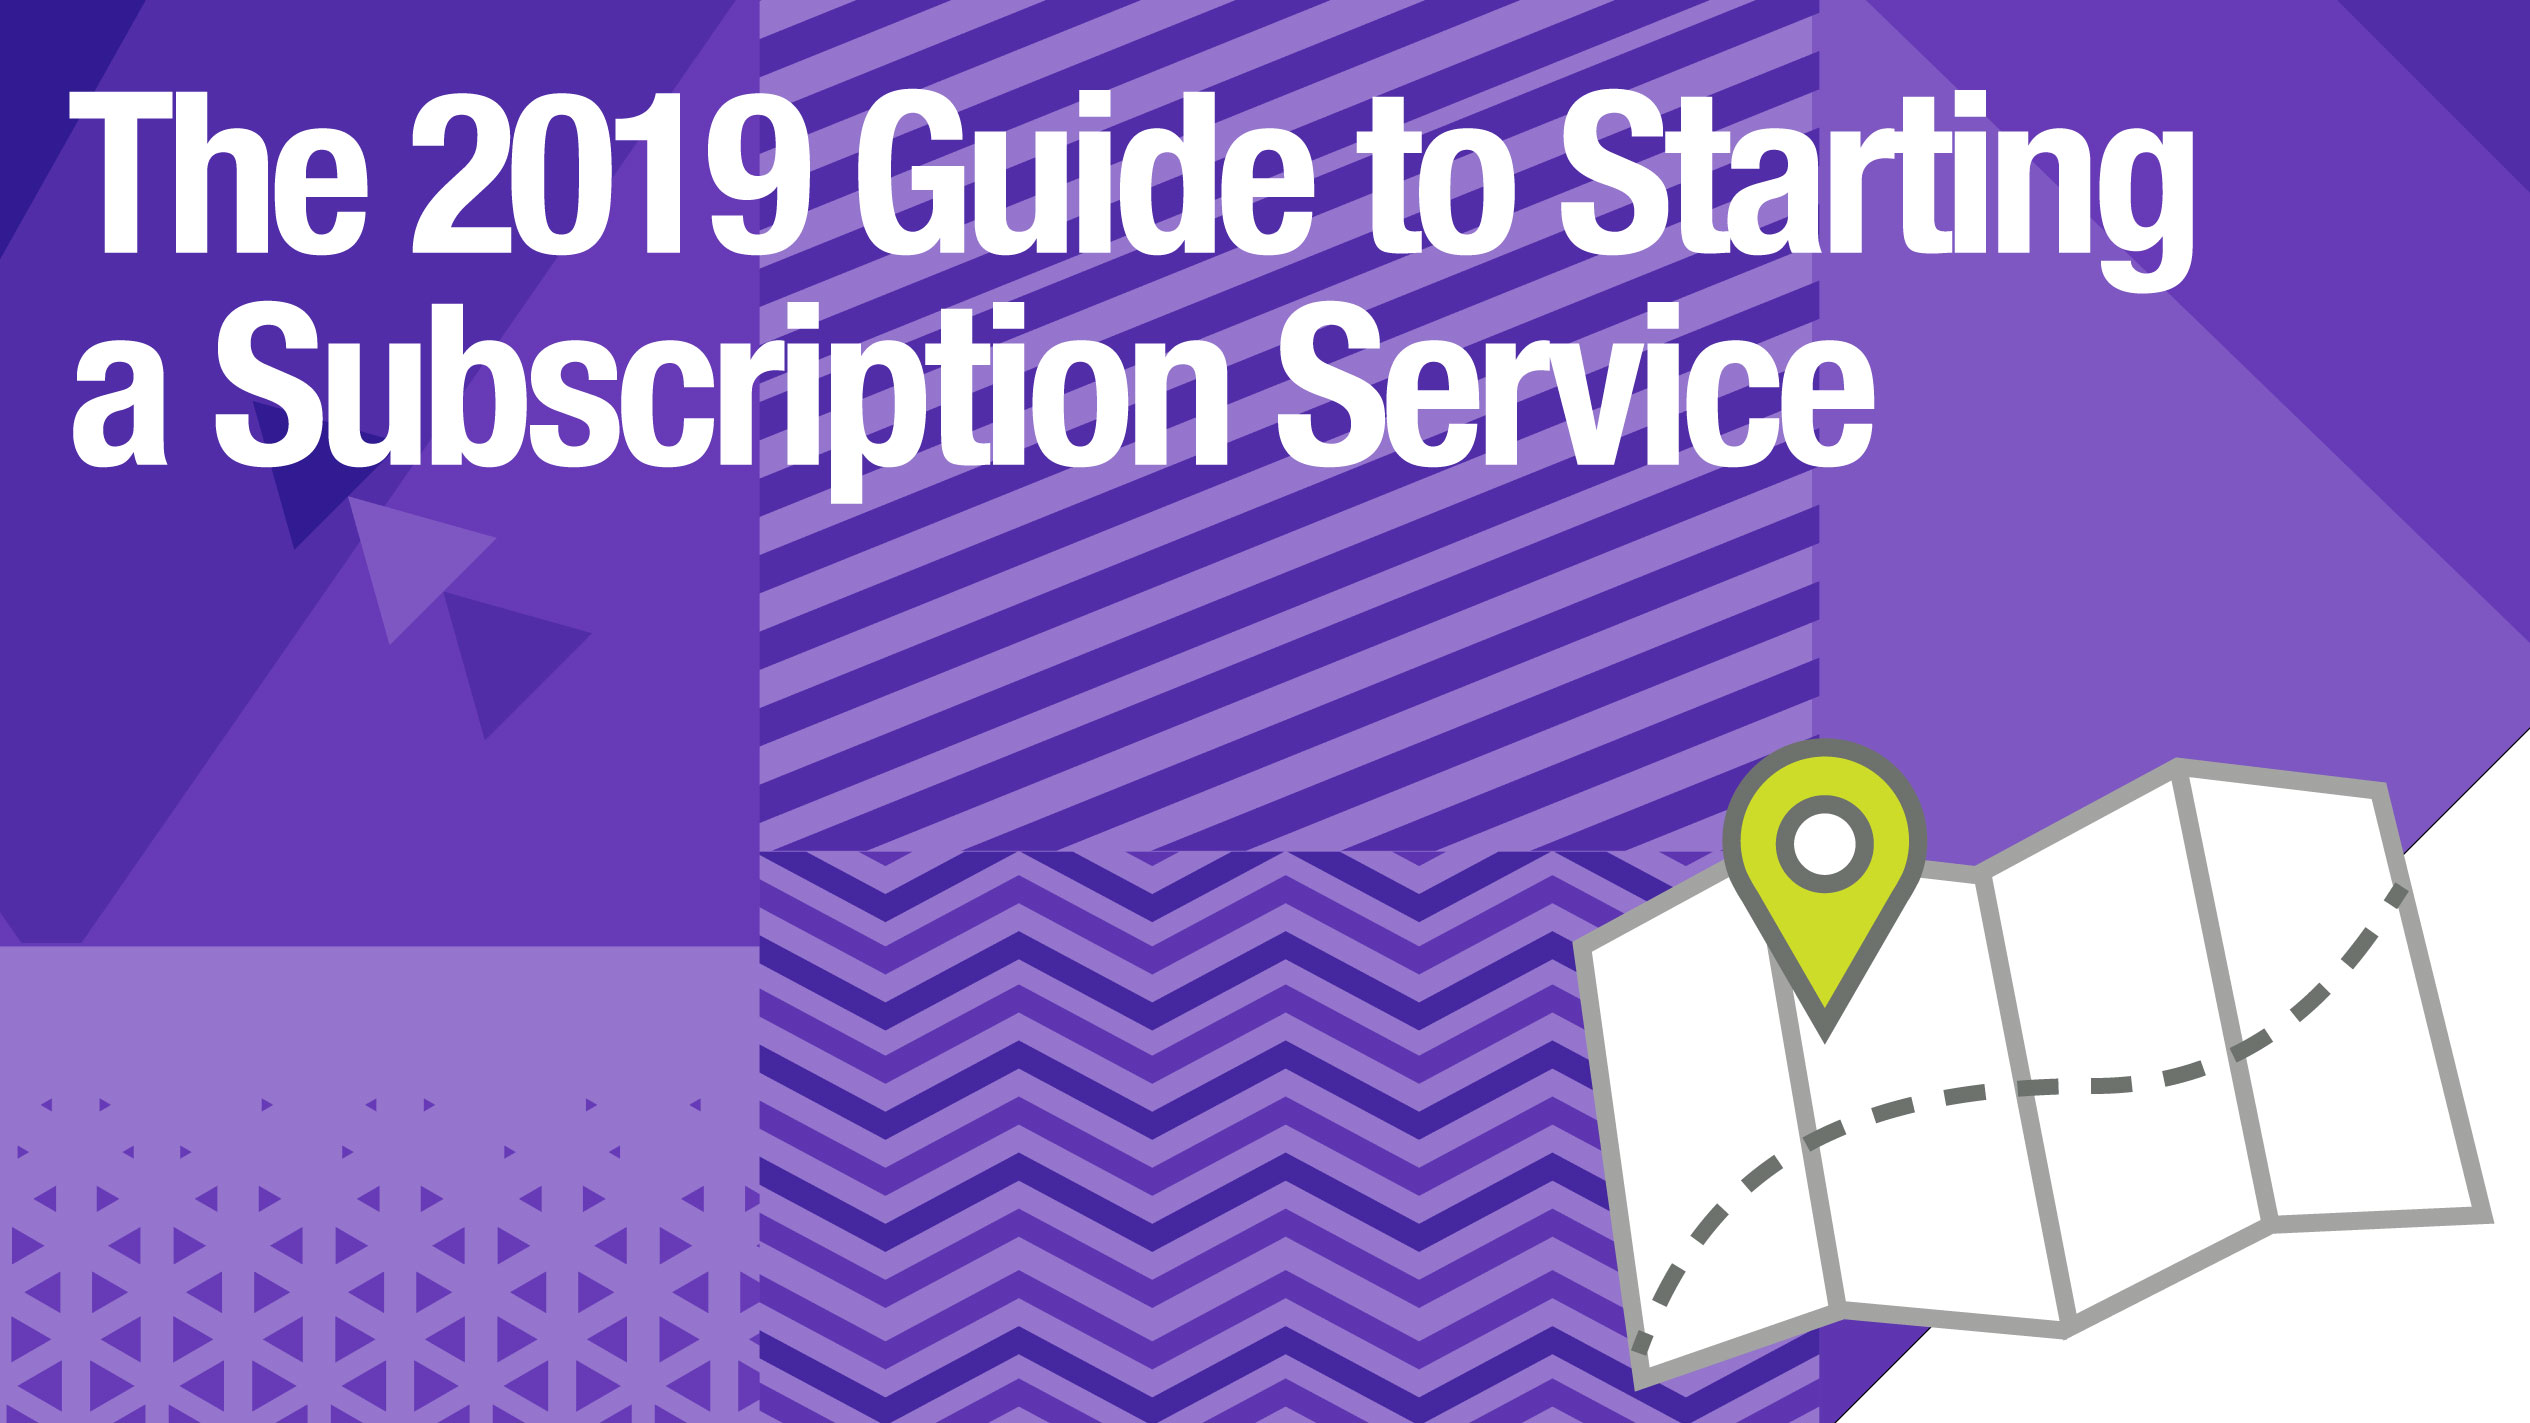 The 2019 Guide to Starting a Subscription Service